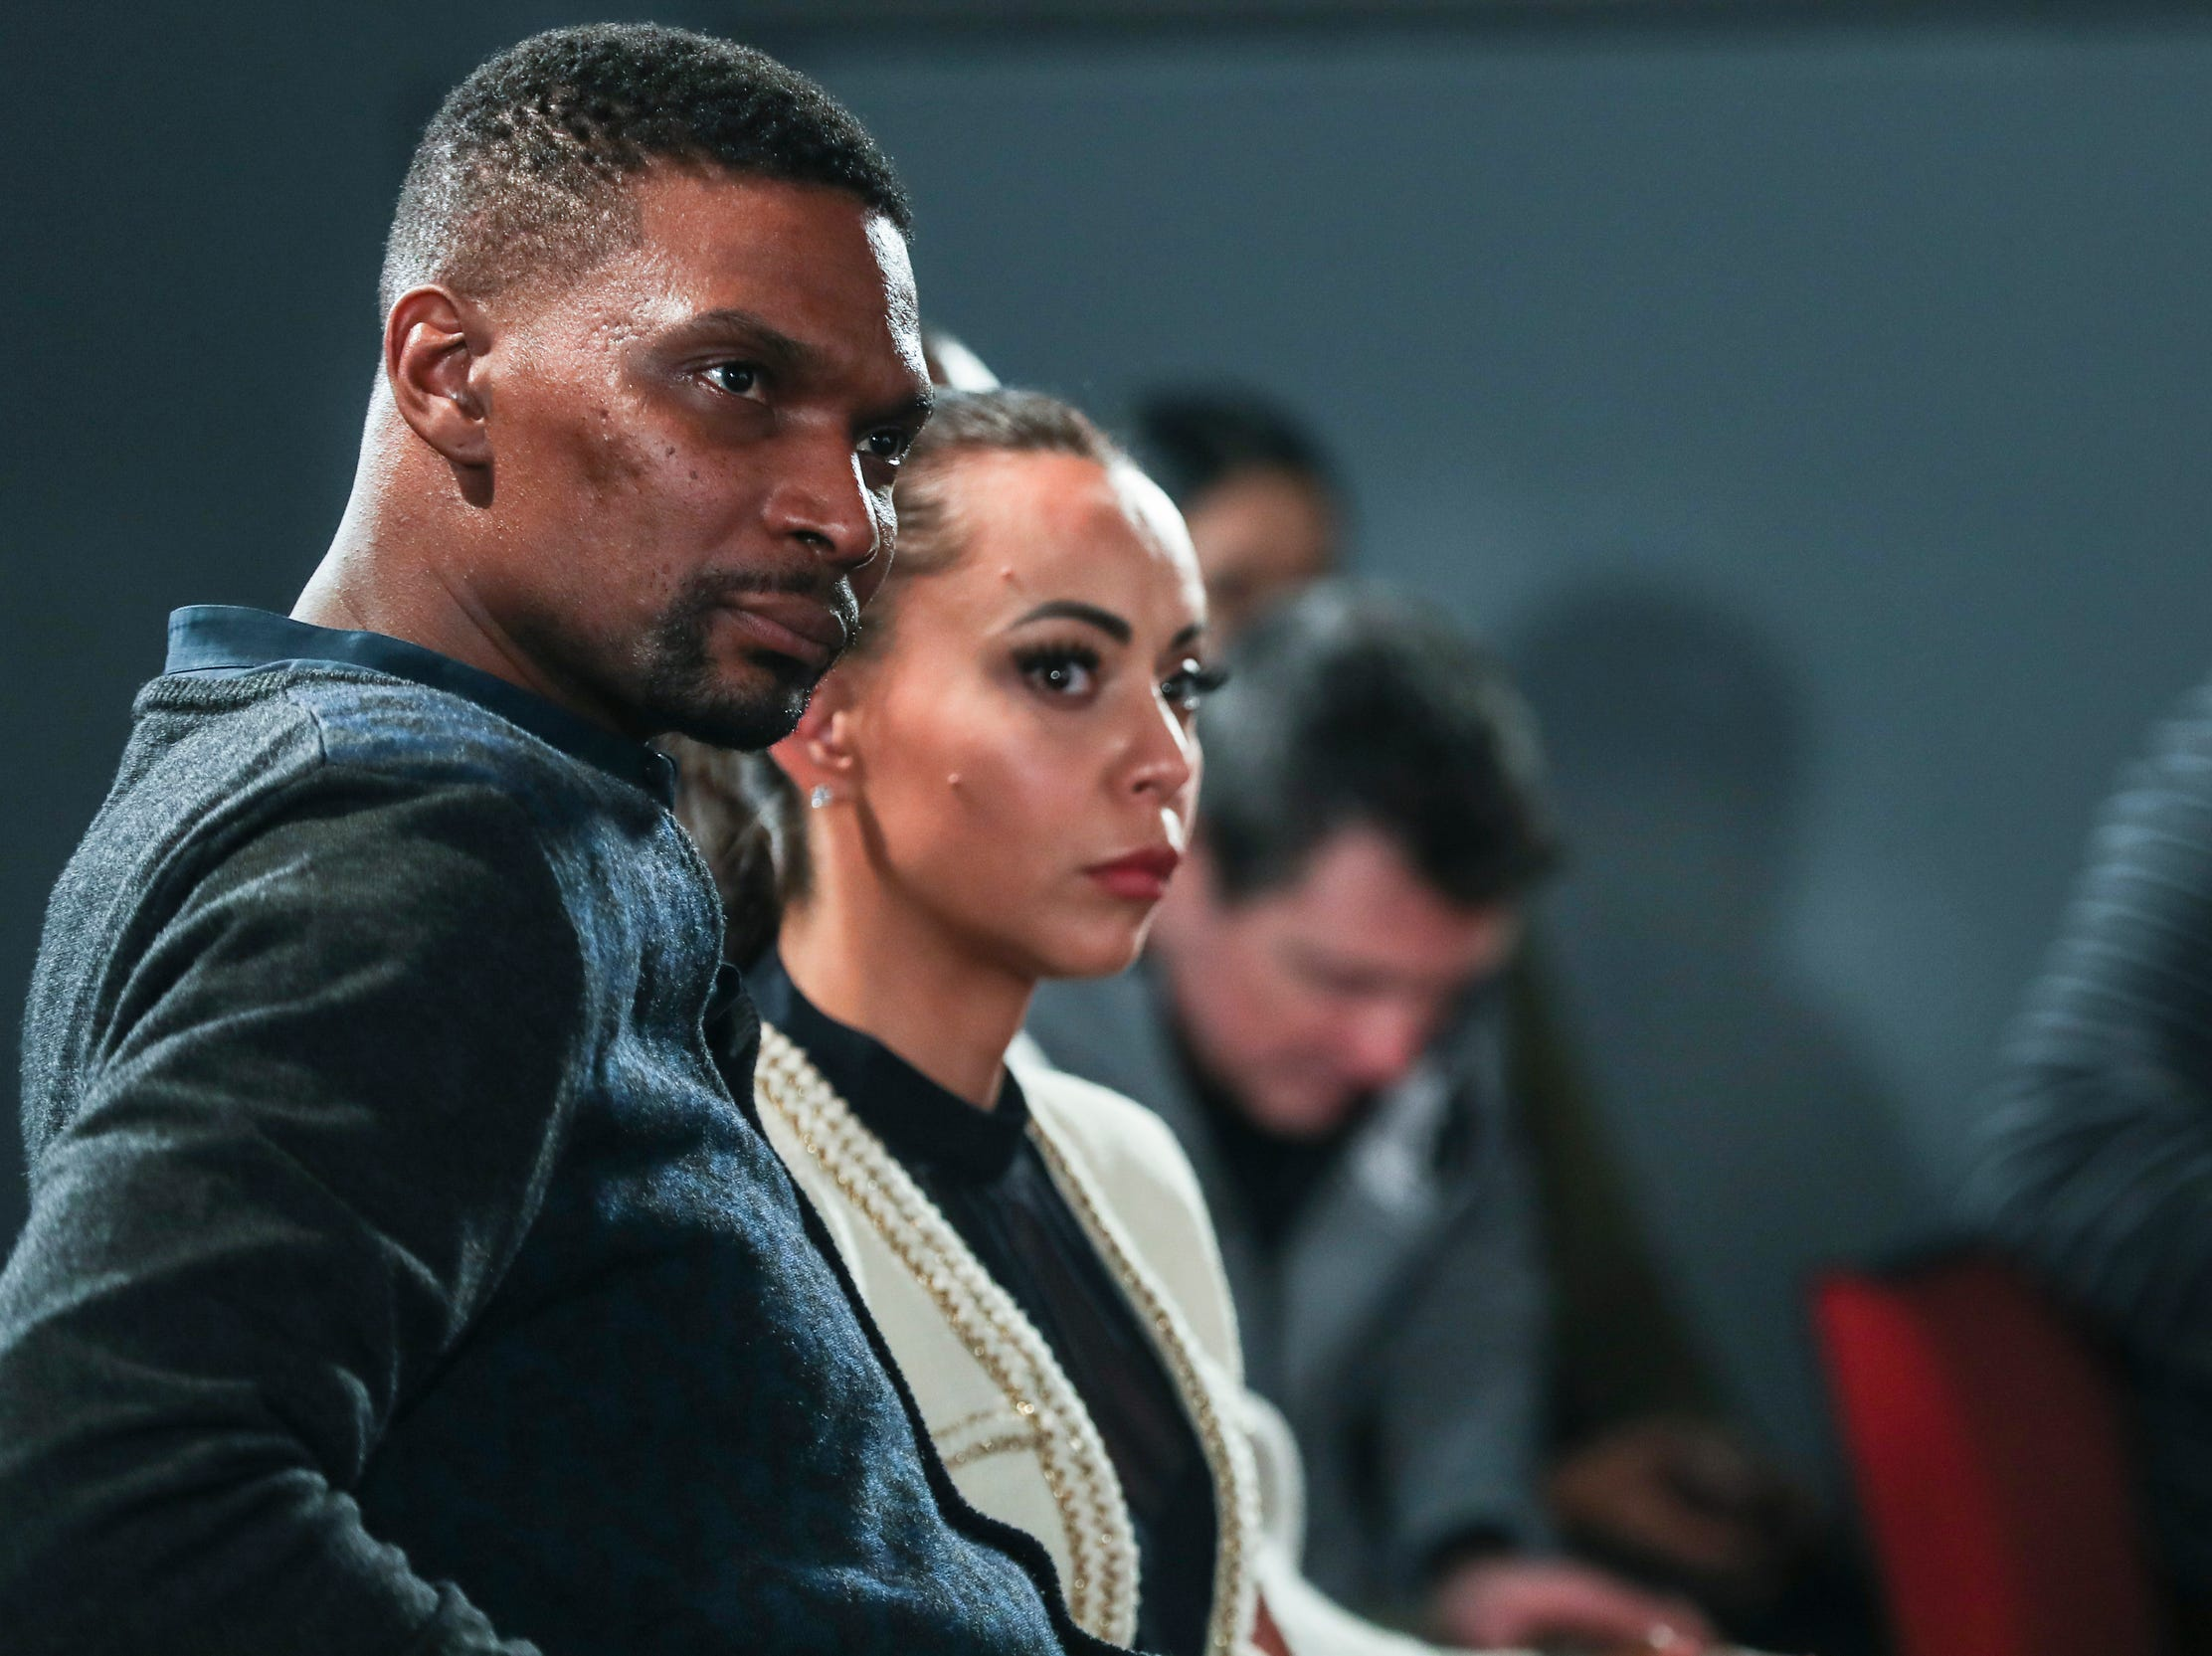 January 20 2019 - Two-time NBA Champion Chris Bosh watches the Intersection of Race & Sports panel discussion at the National Civil Rights Museum. Bosh was one of the National Civil Rights Museum Sports Legacy Award recipients.